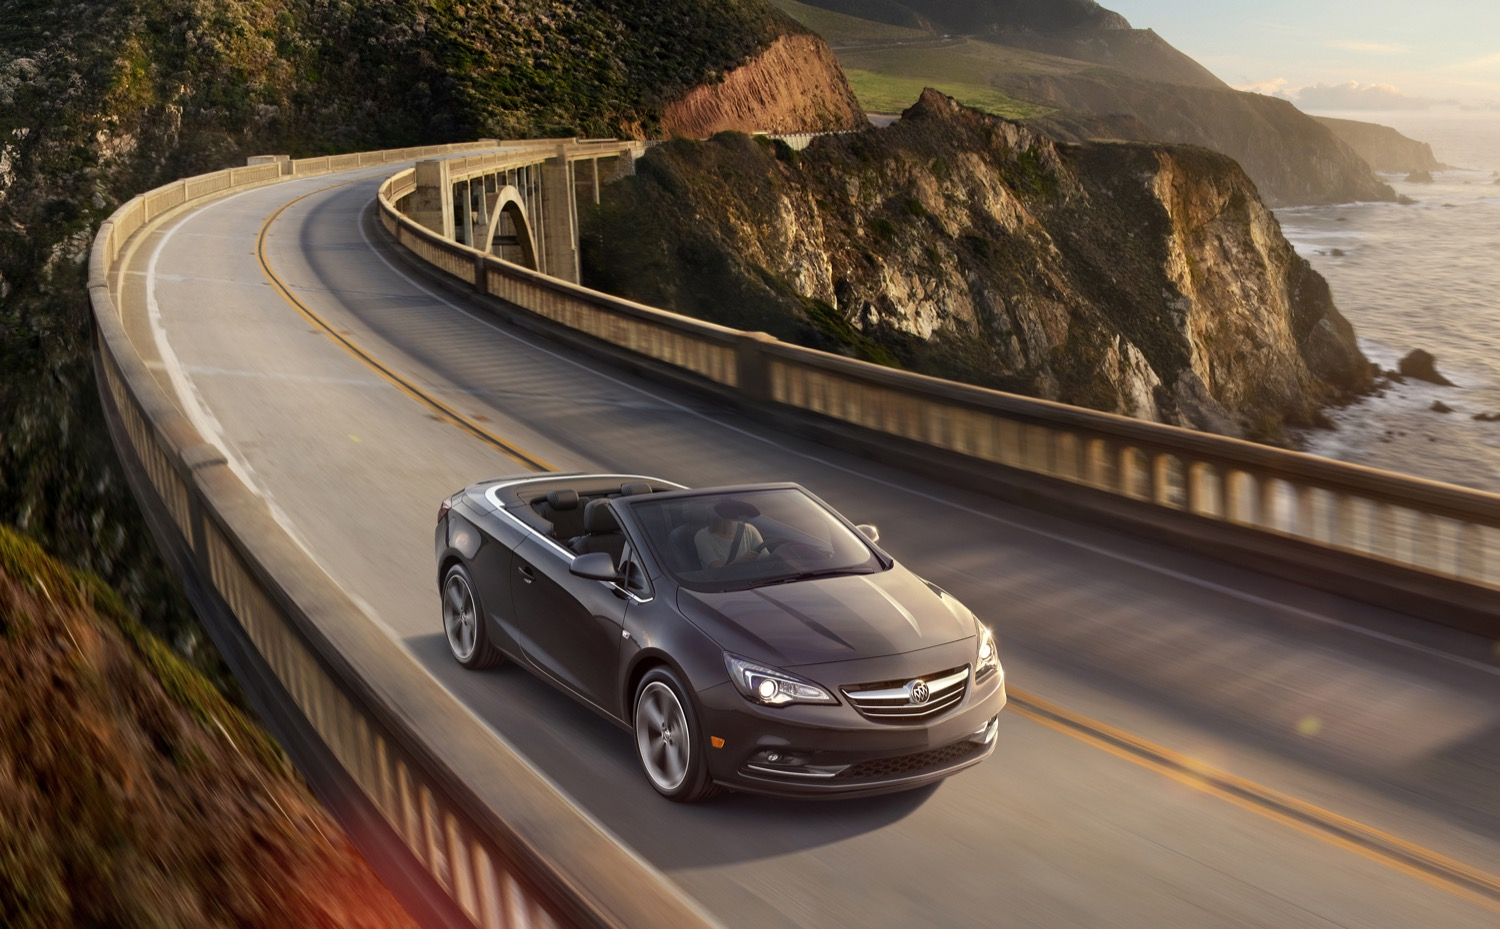 Buick Cascada To Be Axed With Opel Version? | Gm Authority 2021 Buick Cascada Specs, Owners Manual, Accessories